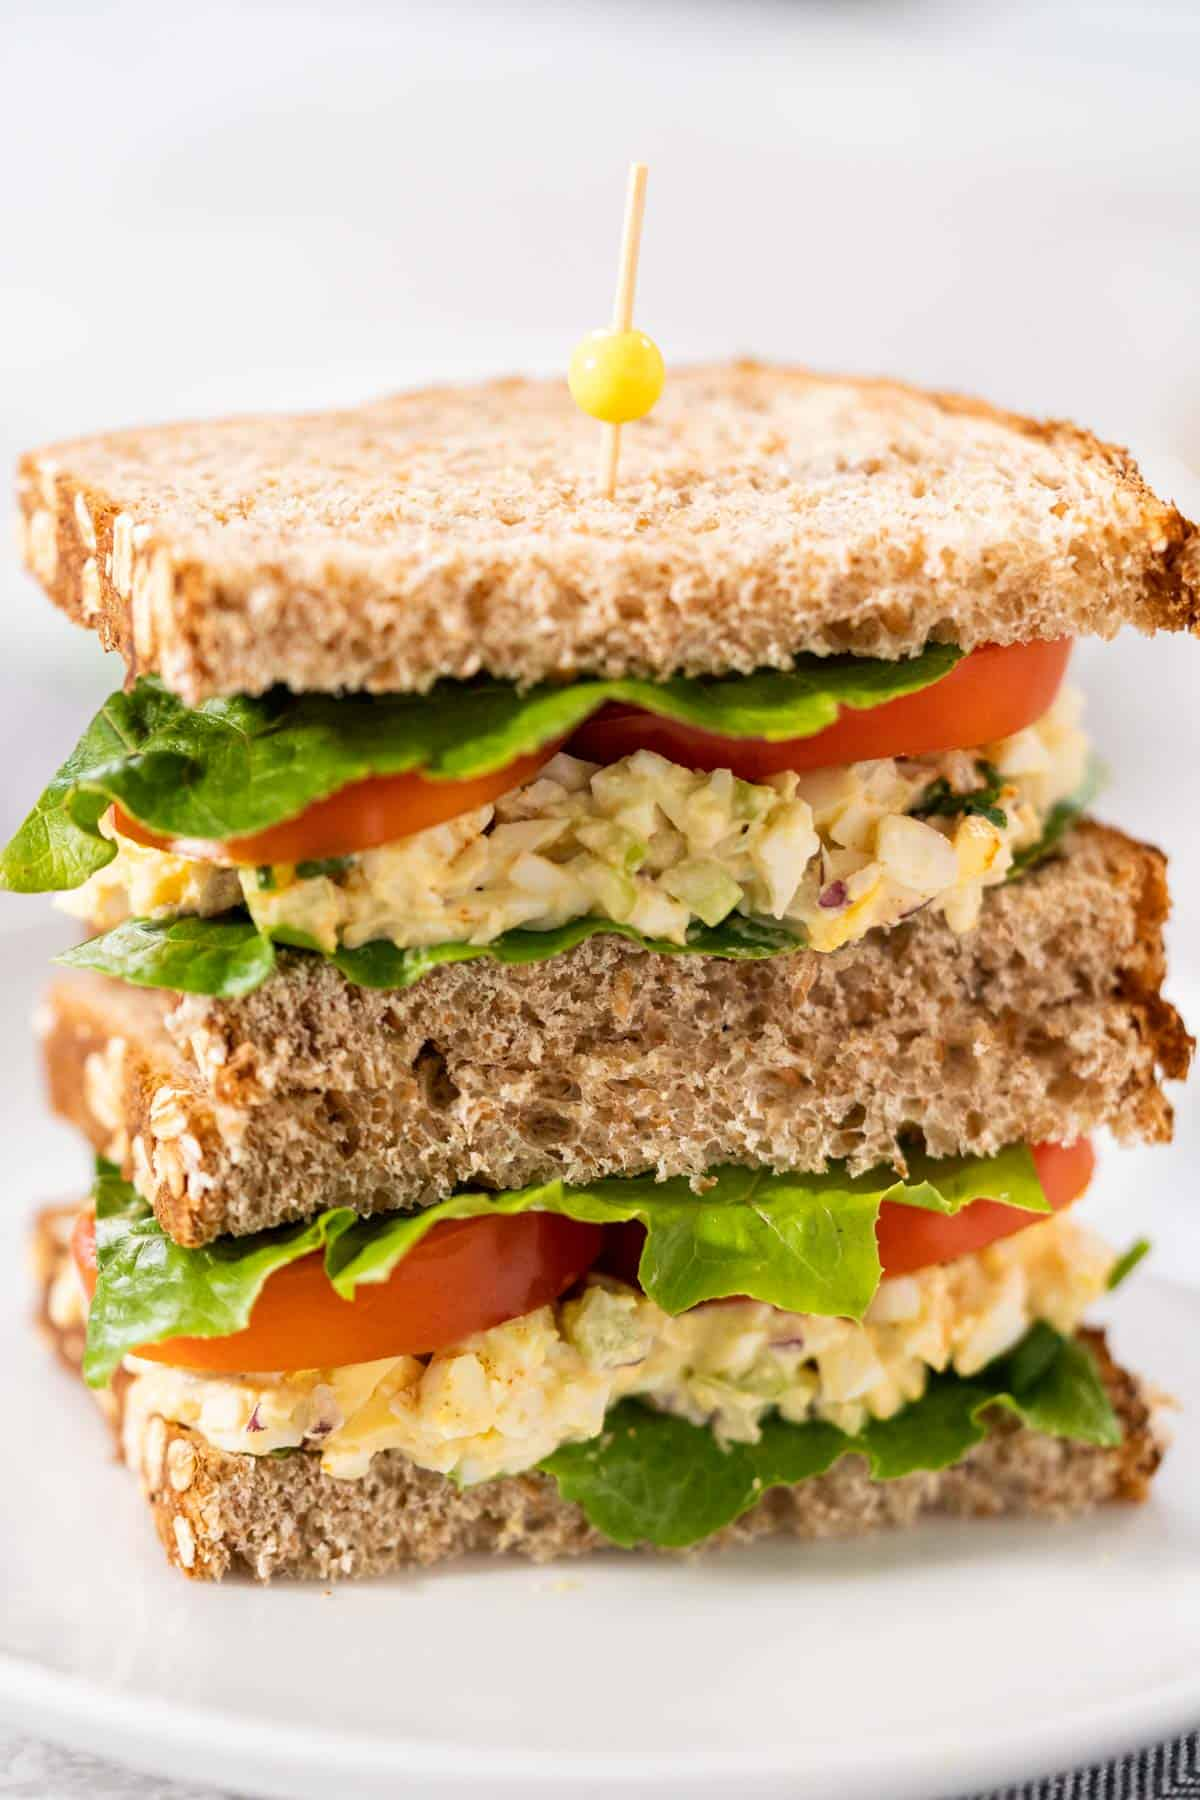 Instant Pot Egg Salad on wheat bread with tomato and lettuce.